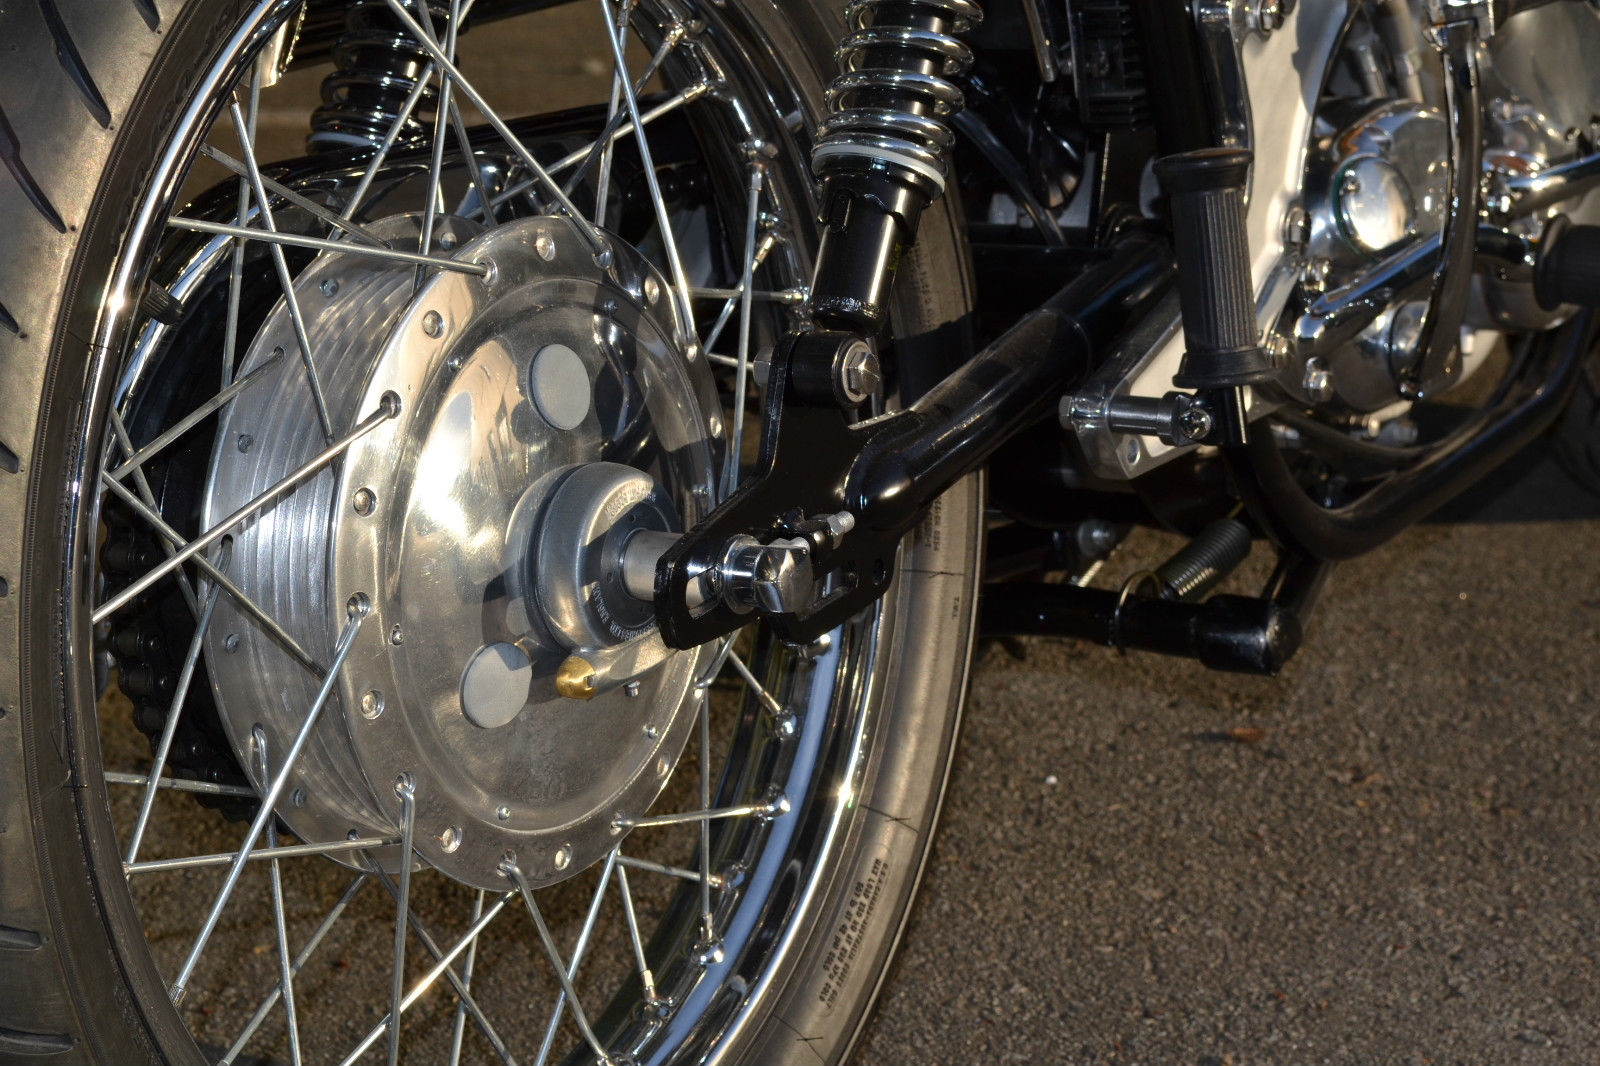 Norton Commando S-Type - 1969 - Rear Hub, Swing Arm and Shock Absorber.